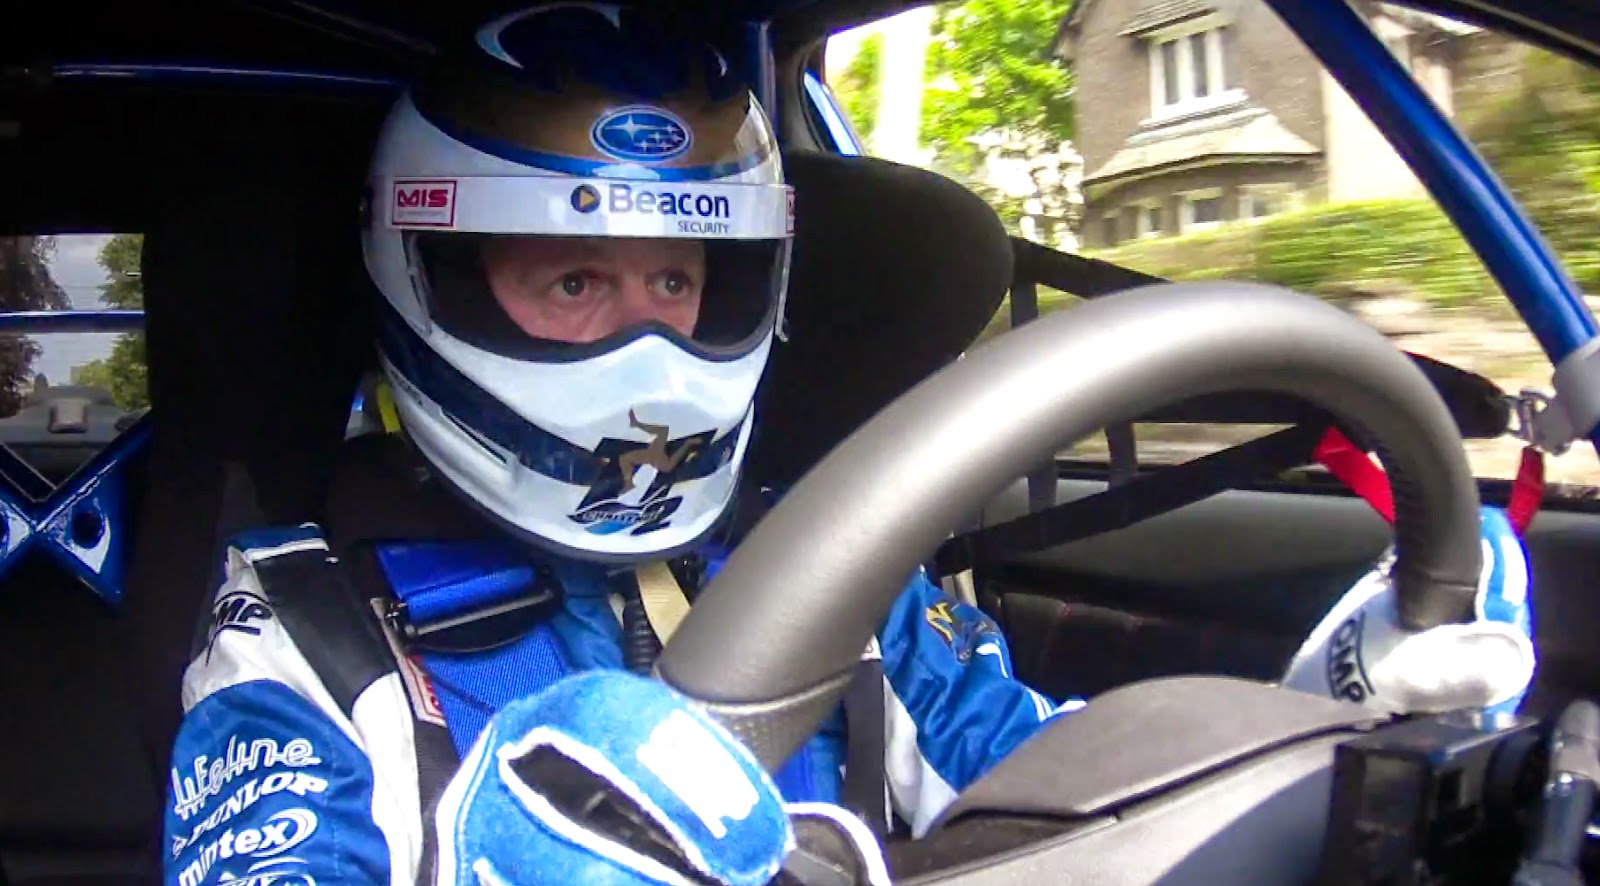 Race Driver inside Subaru WRX STi at Isle of Man TT